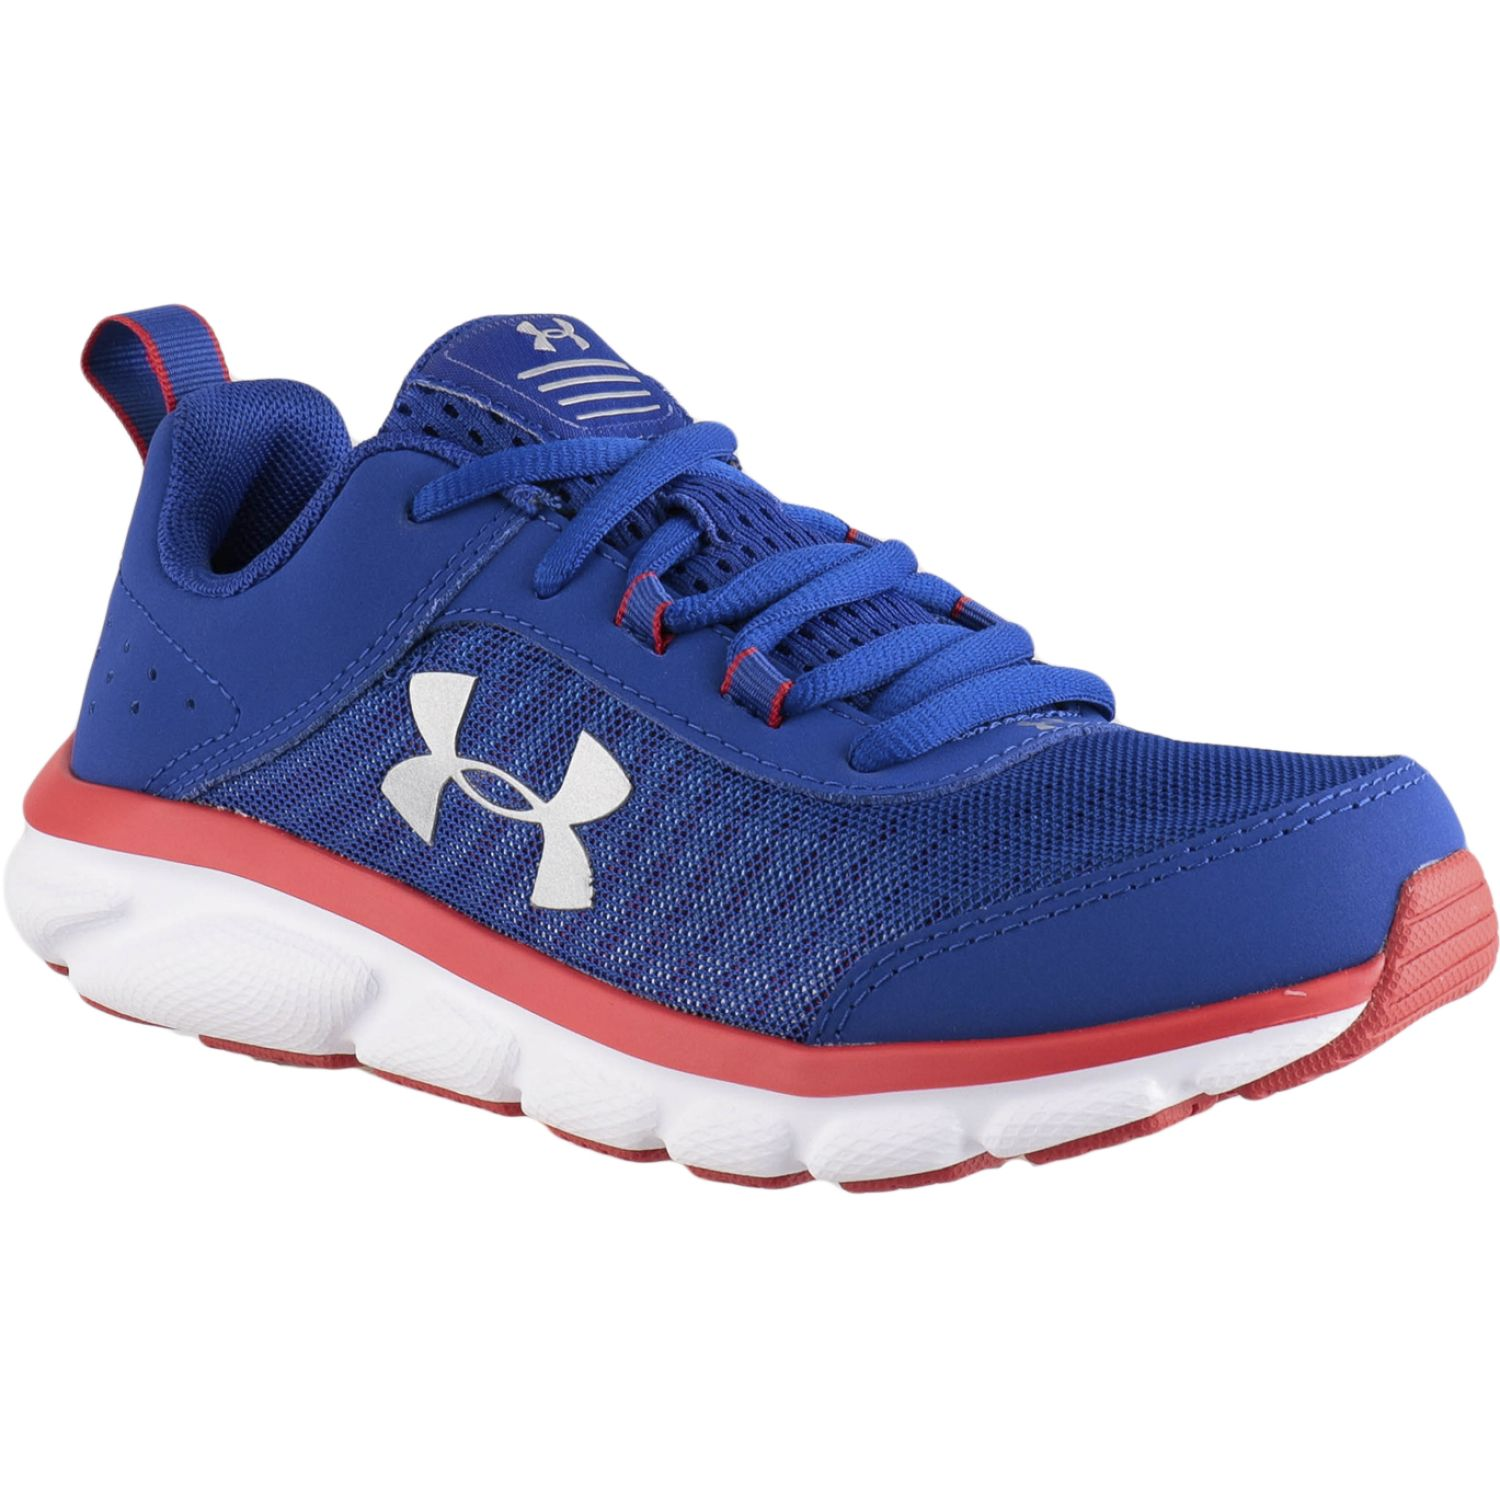 Under Armour UA GS Assert 8 Azul / rojo Muchachos